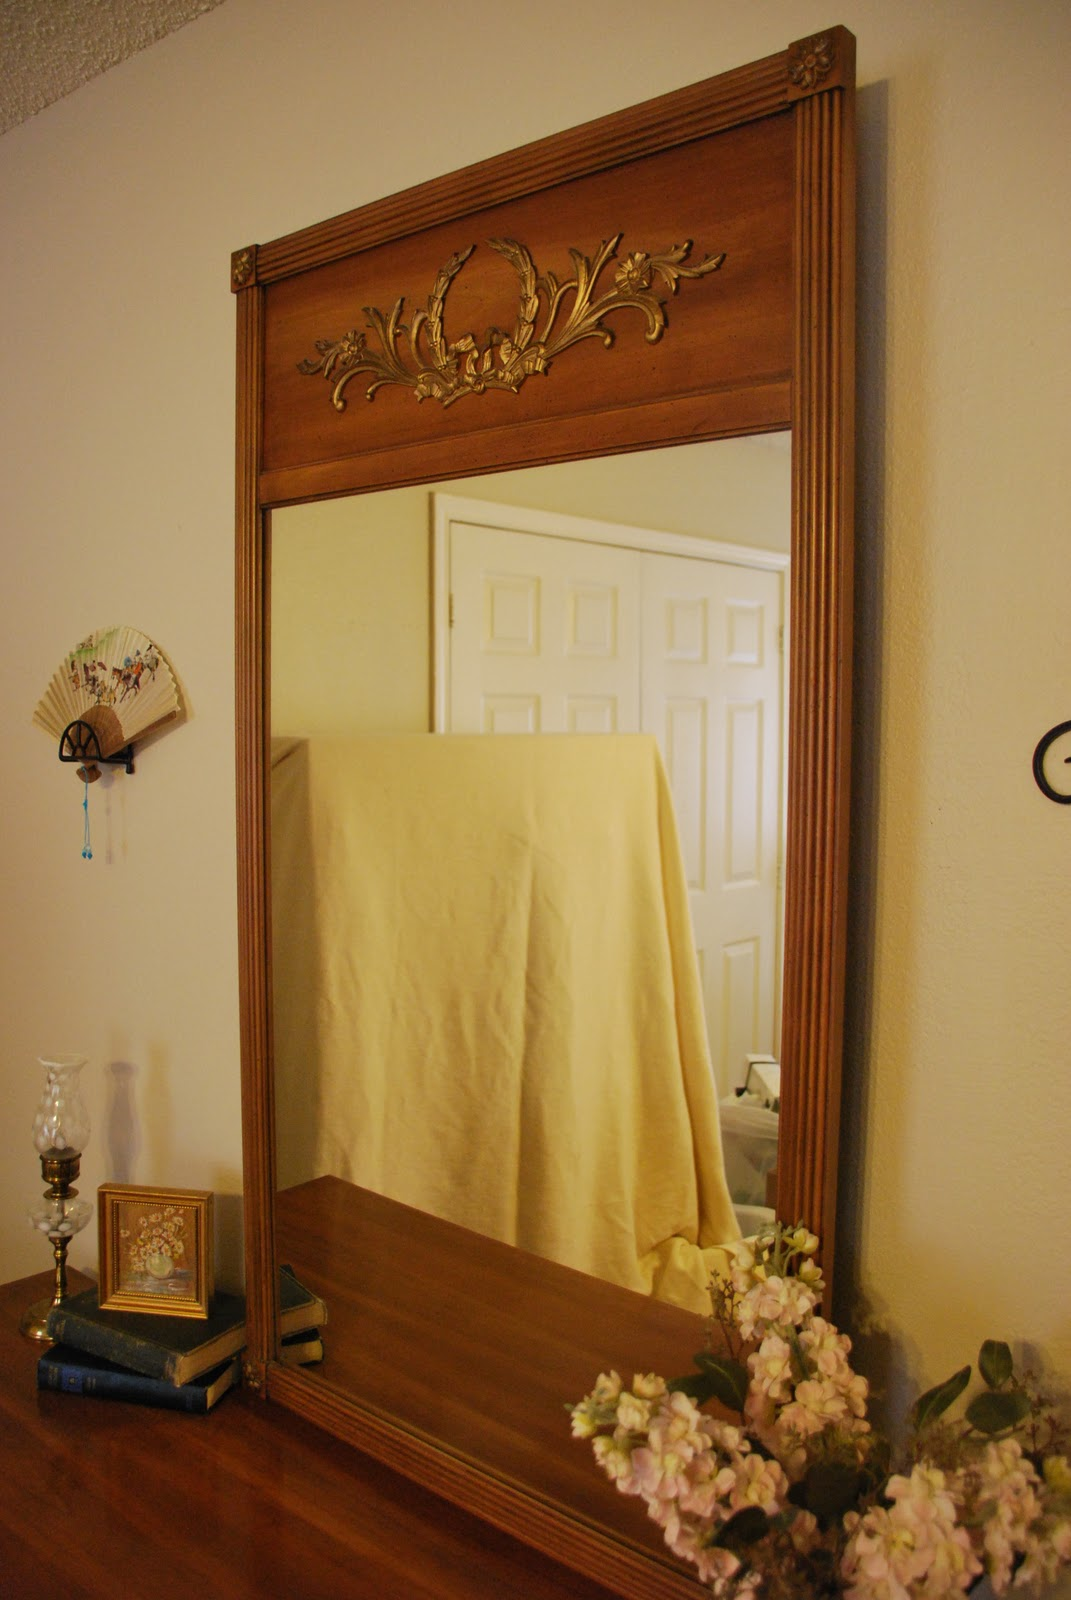 attached mirror in great condition